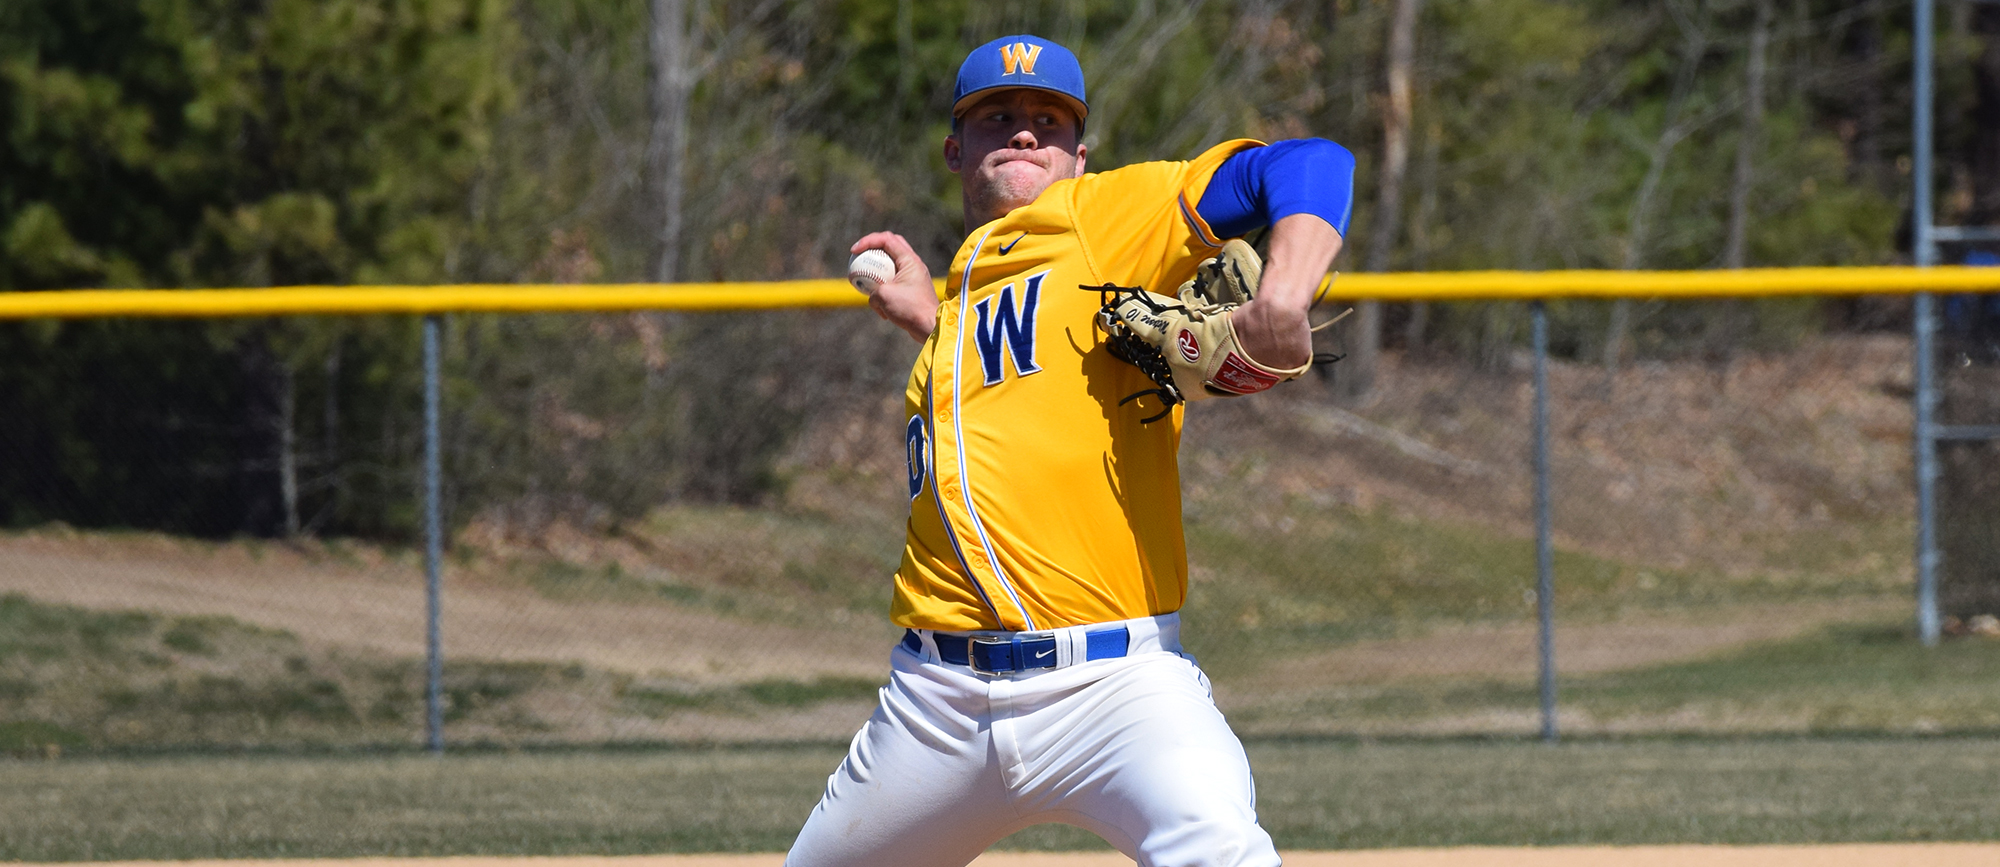 Junior Paul Wetmore threw a complete game, one-hit shutout in game two as Western New England earned a sweep at Gordon on Saturday. (Photo by Rachael Margossian)